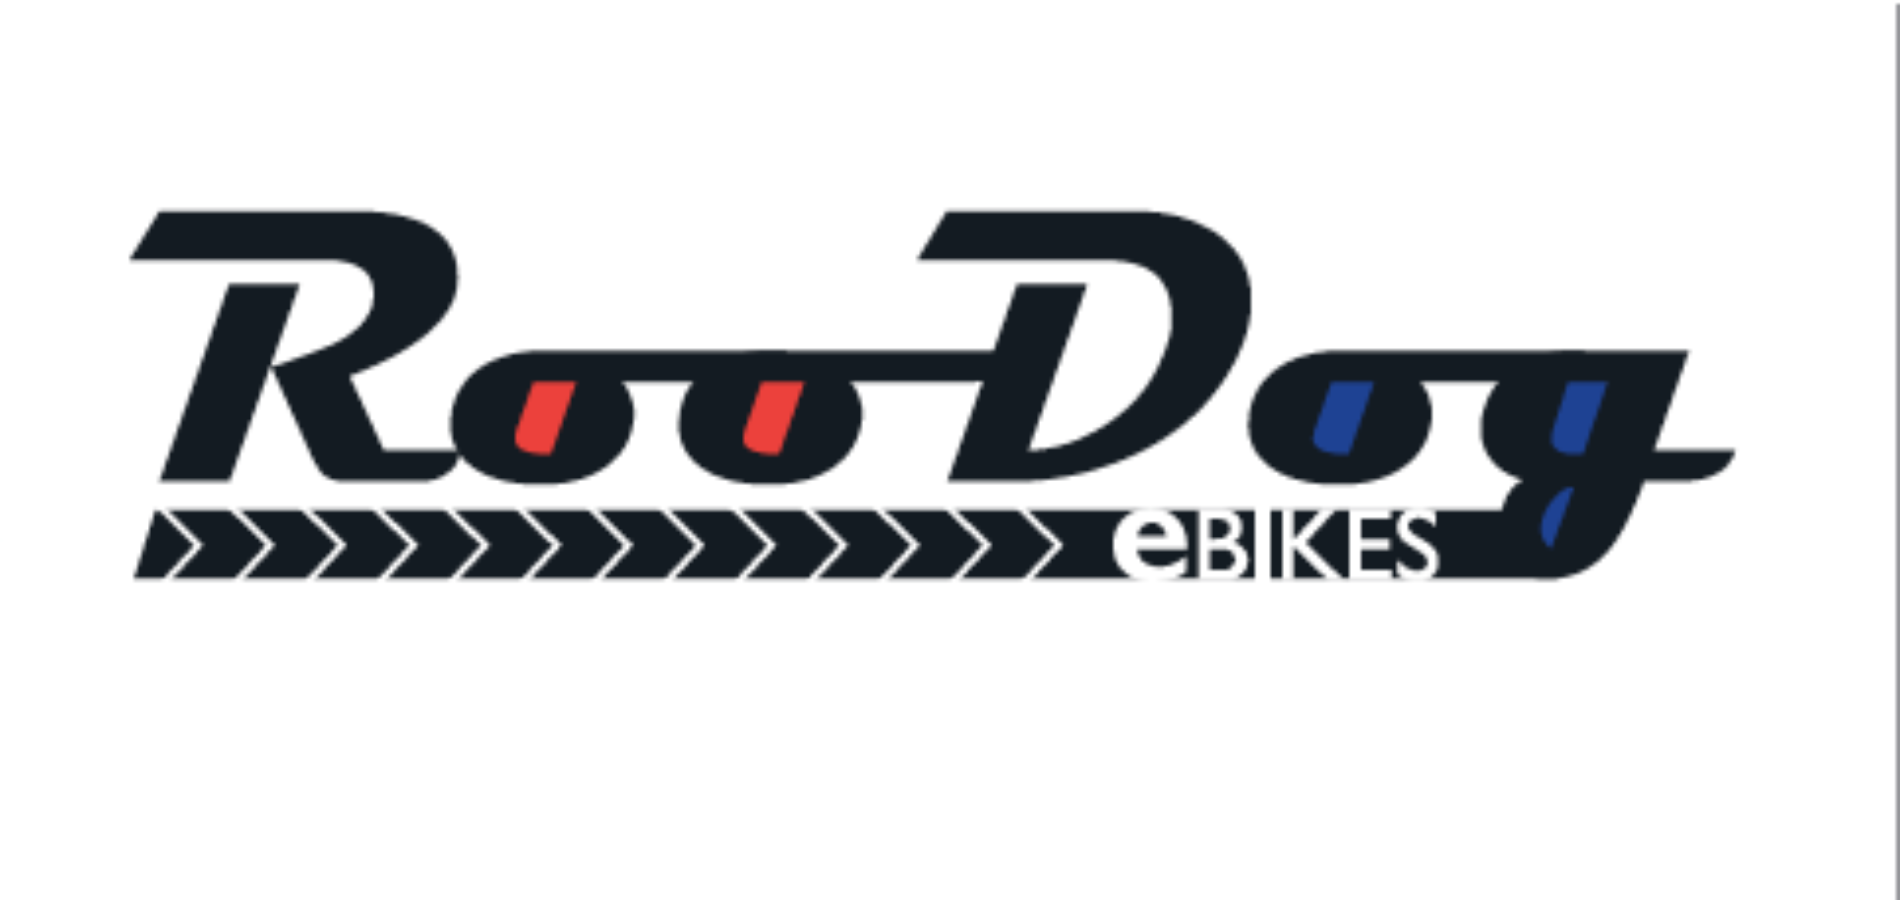 Roodog Electric Bikes